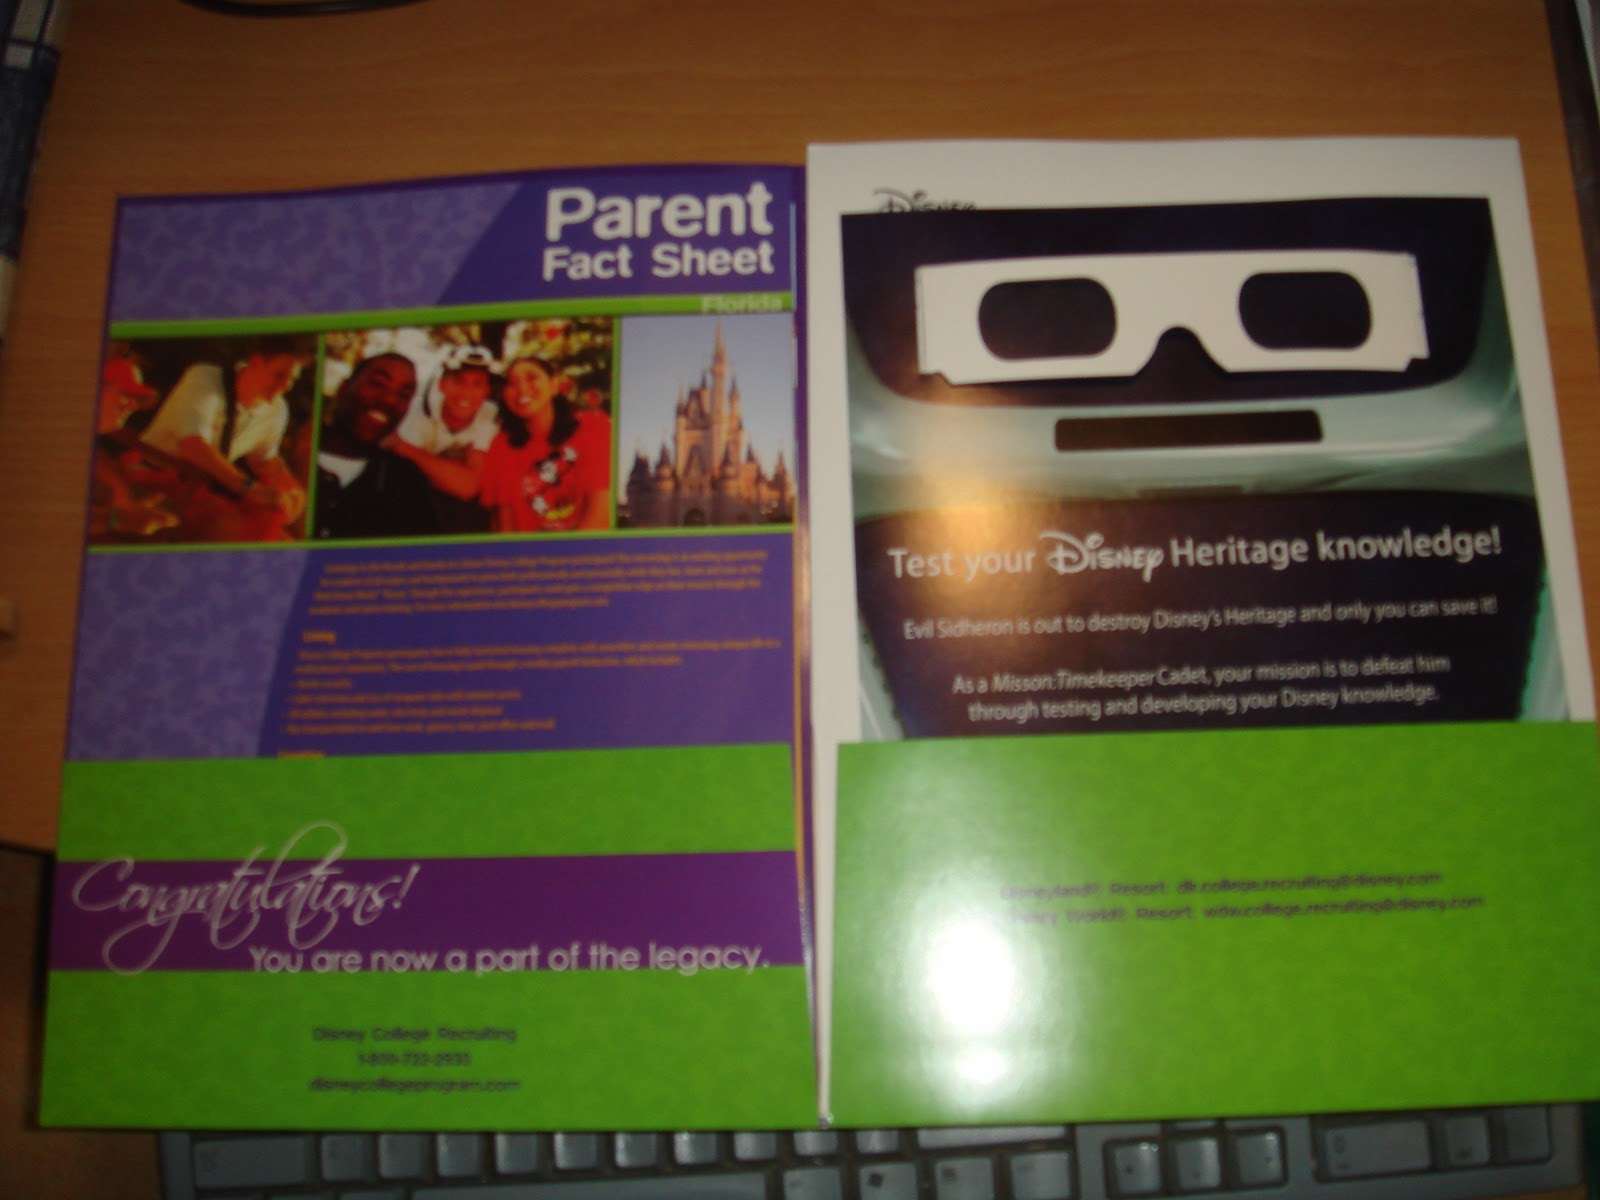 dreaming disney college program acceptance letter look at that it s teh ultimate purple folder yes if you learn that you have been accepted you will receive a purple folder you ll also get a